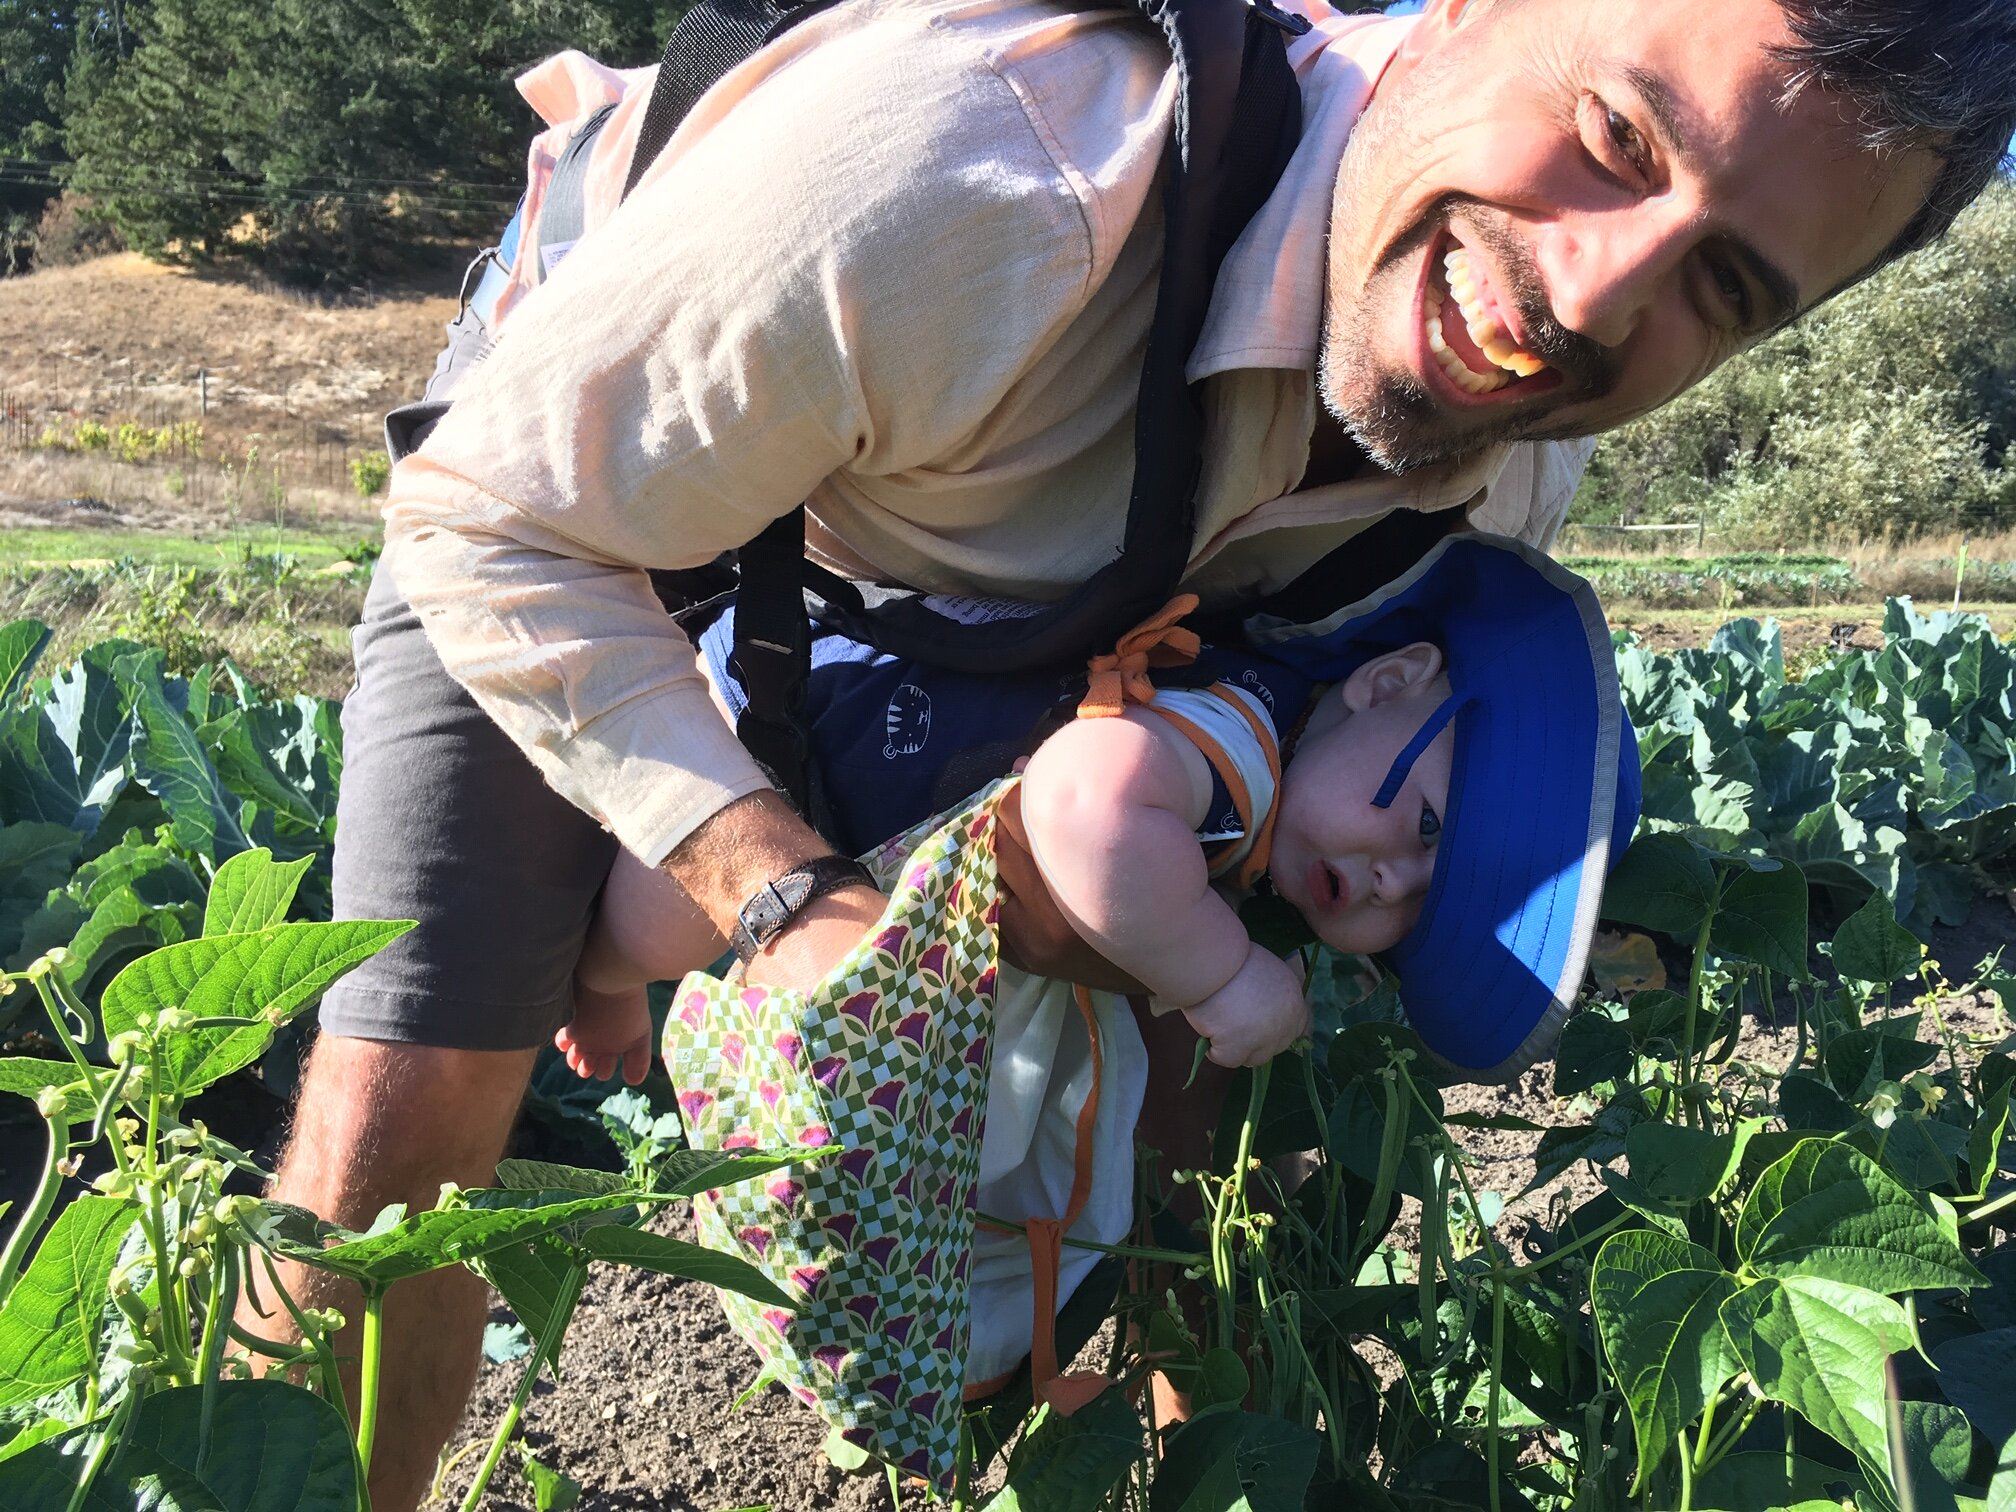 Chase helps Jaime harvest from the new green bean plants